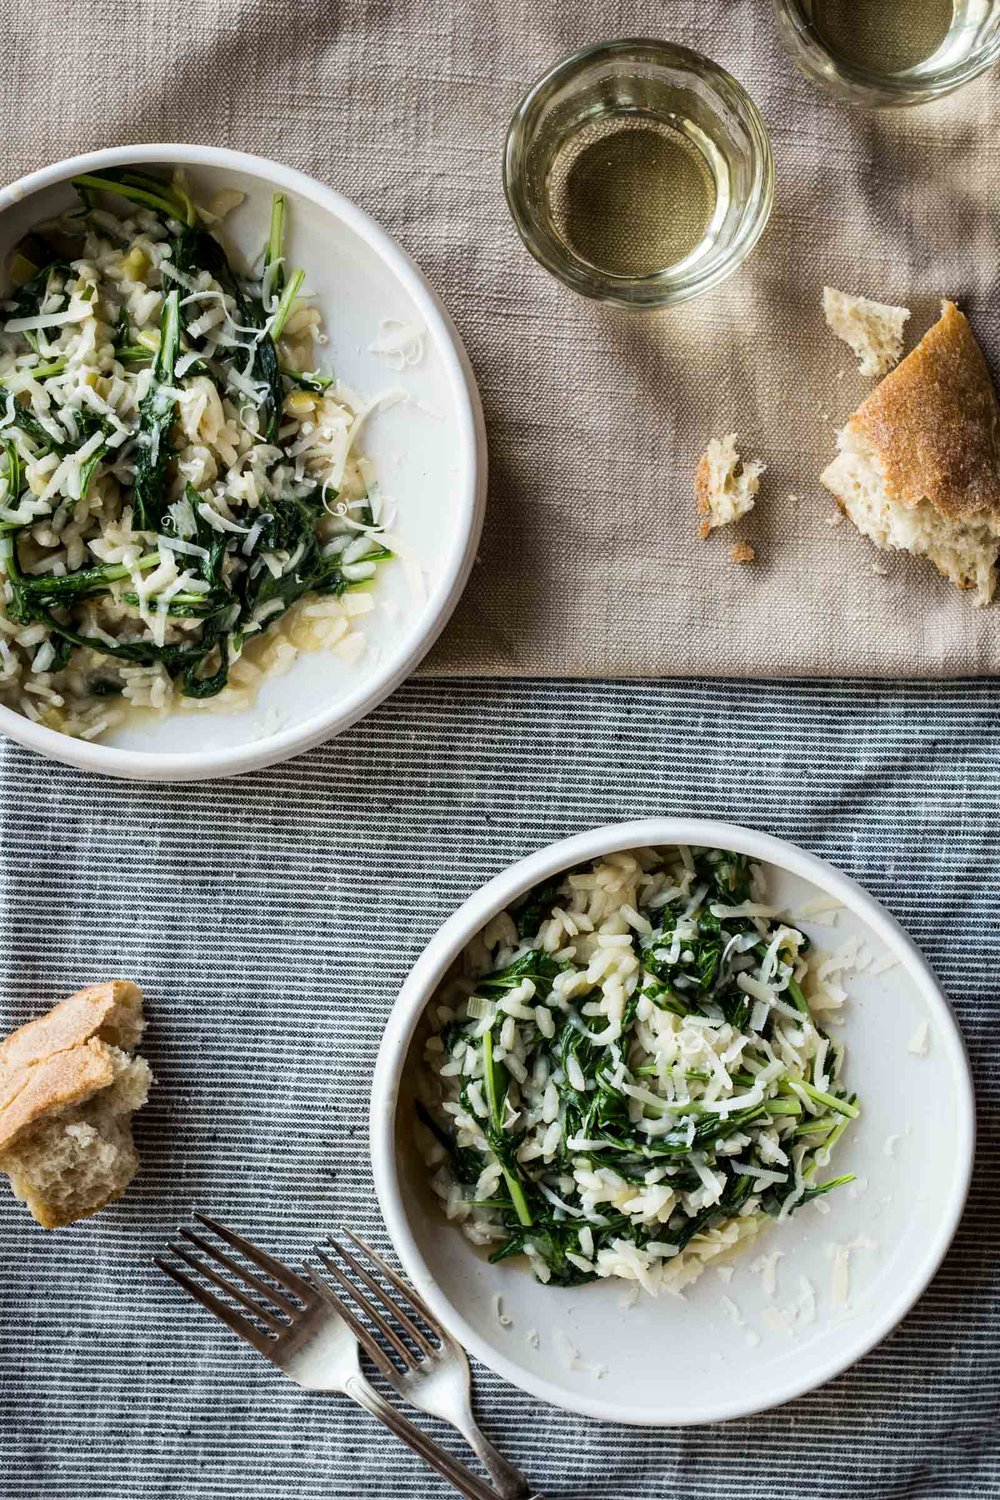 Garlicky Risotto with Mizuna   (substitute the green garlic with leeks or scallions)